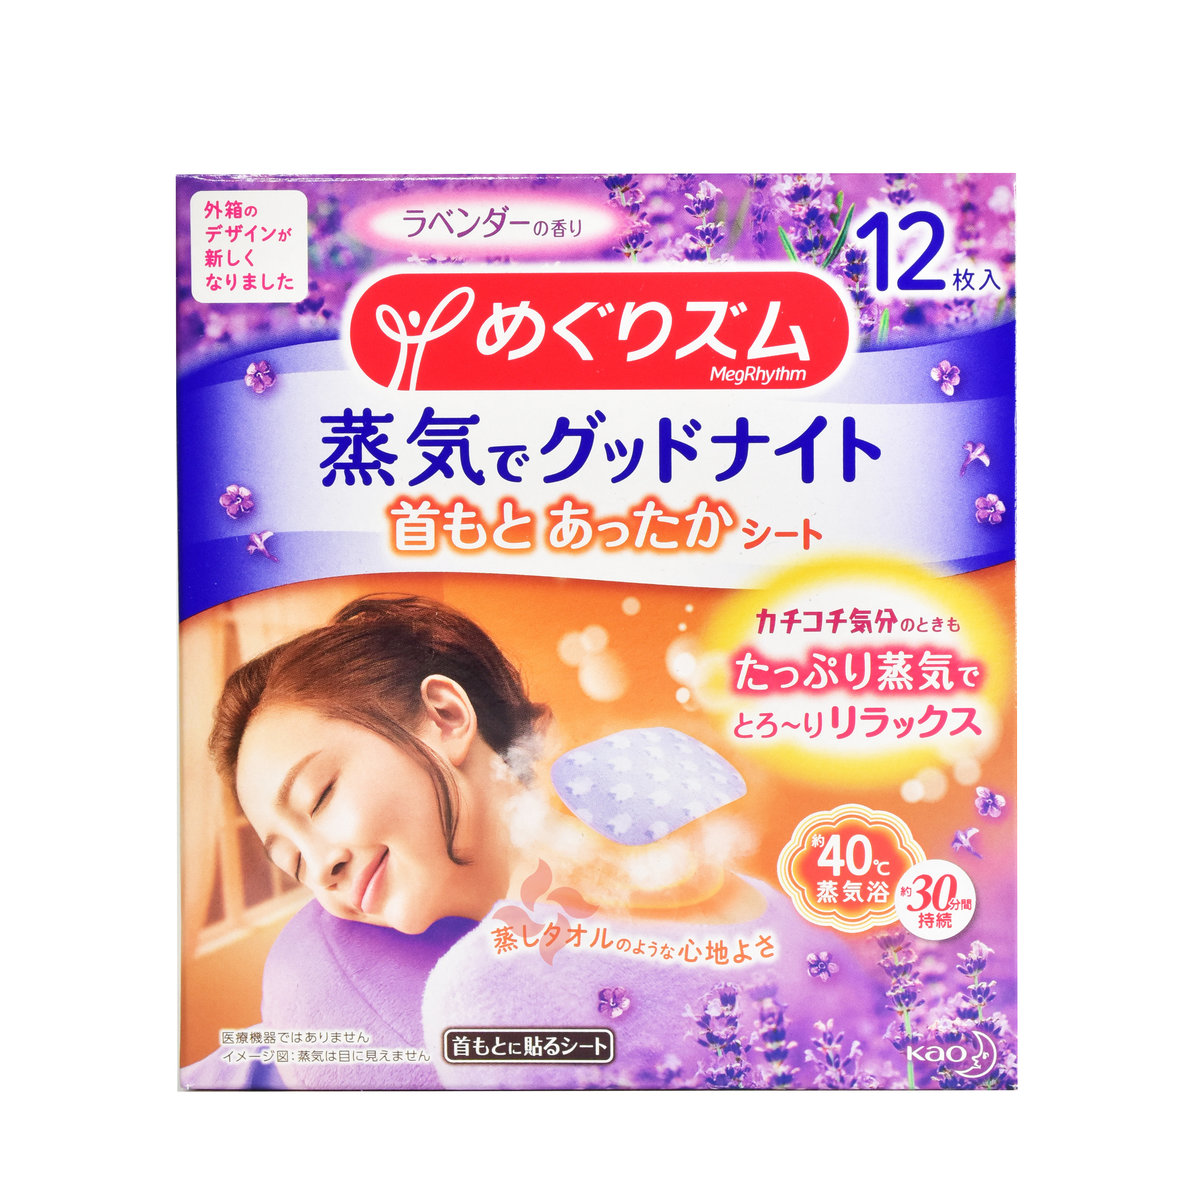 MegRhythm Steam Thermo Patch For Neck 12pcs Lavender (4901301348128)